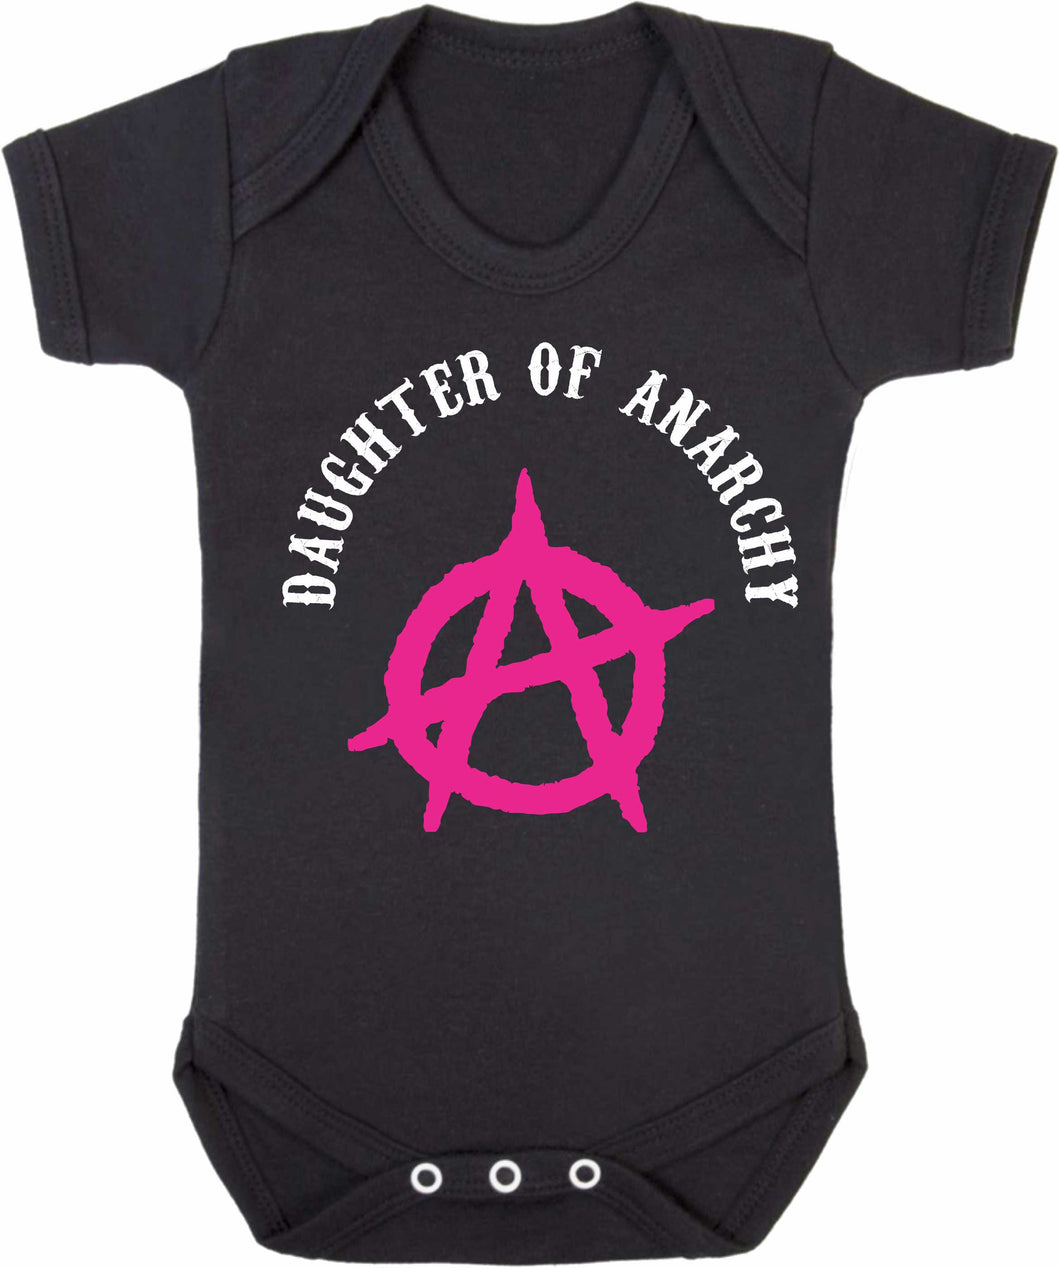 BABY: Daughter of Anarchy